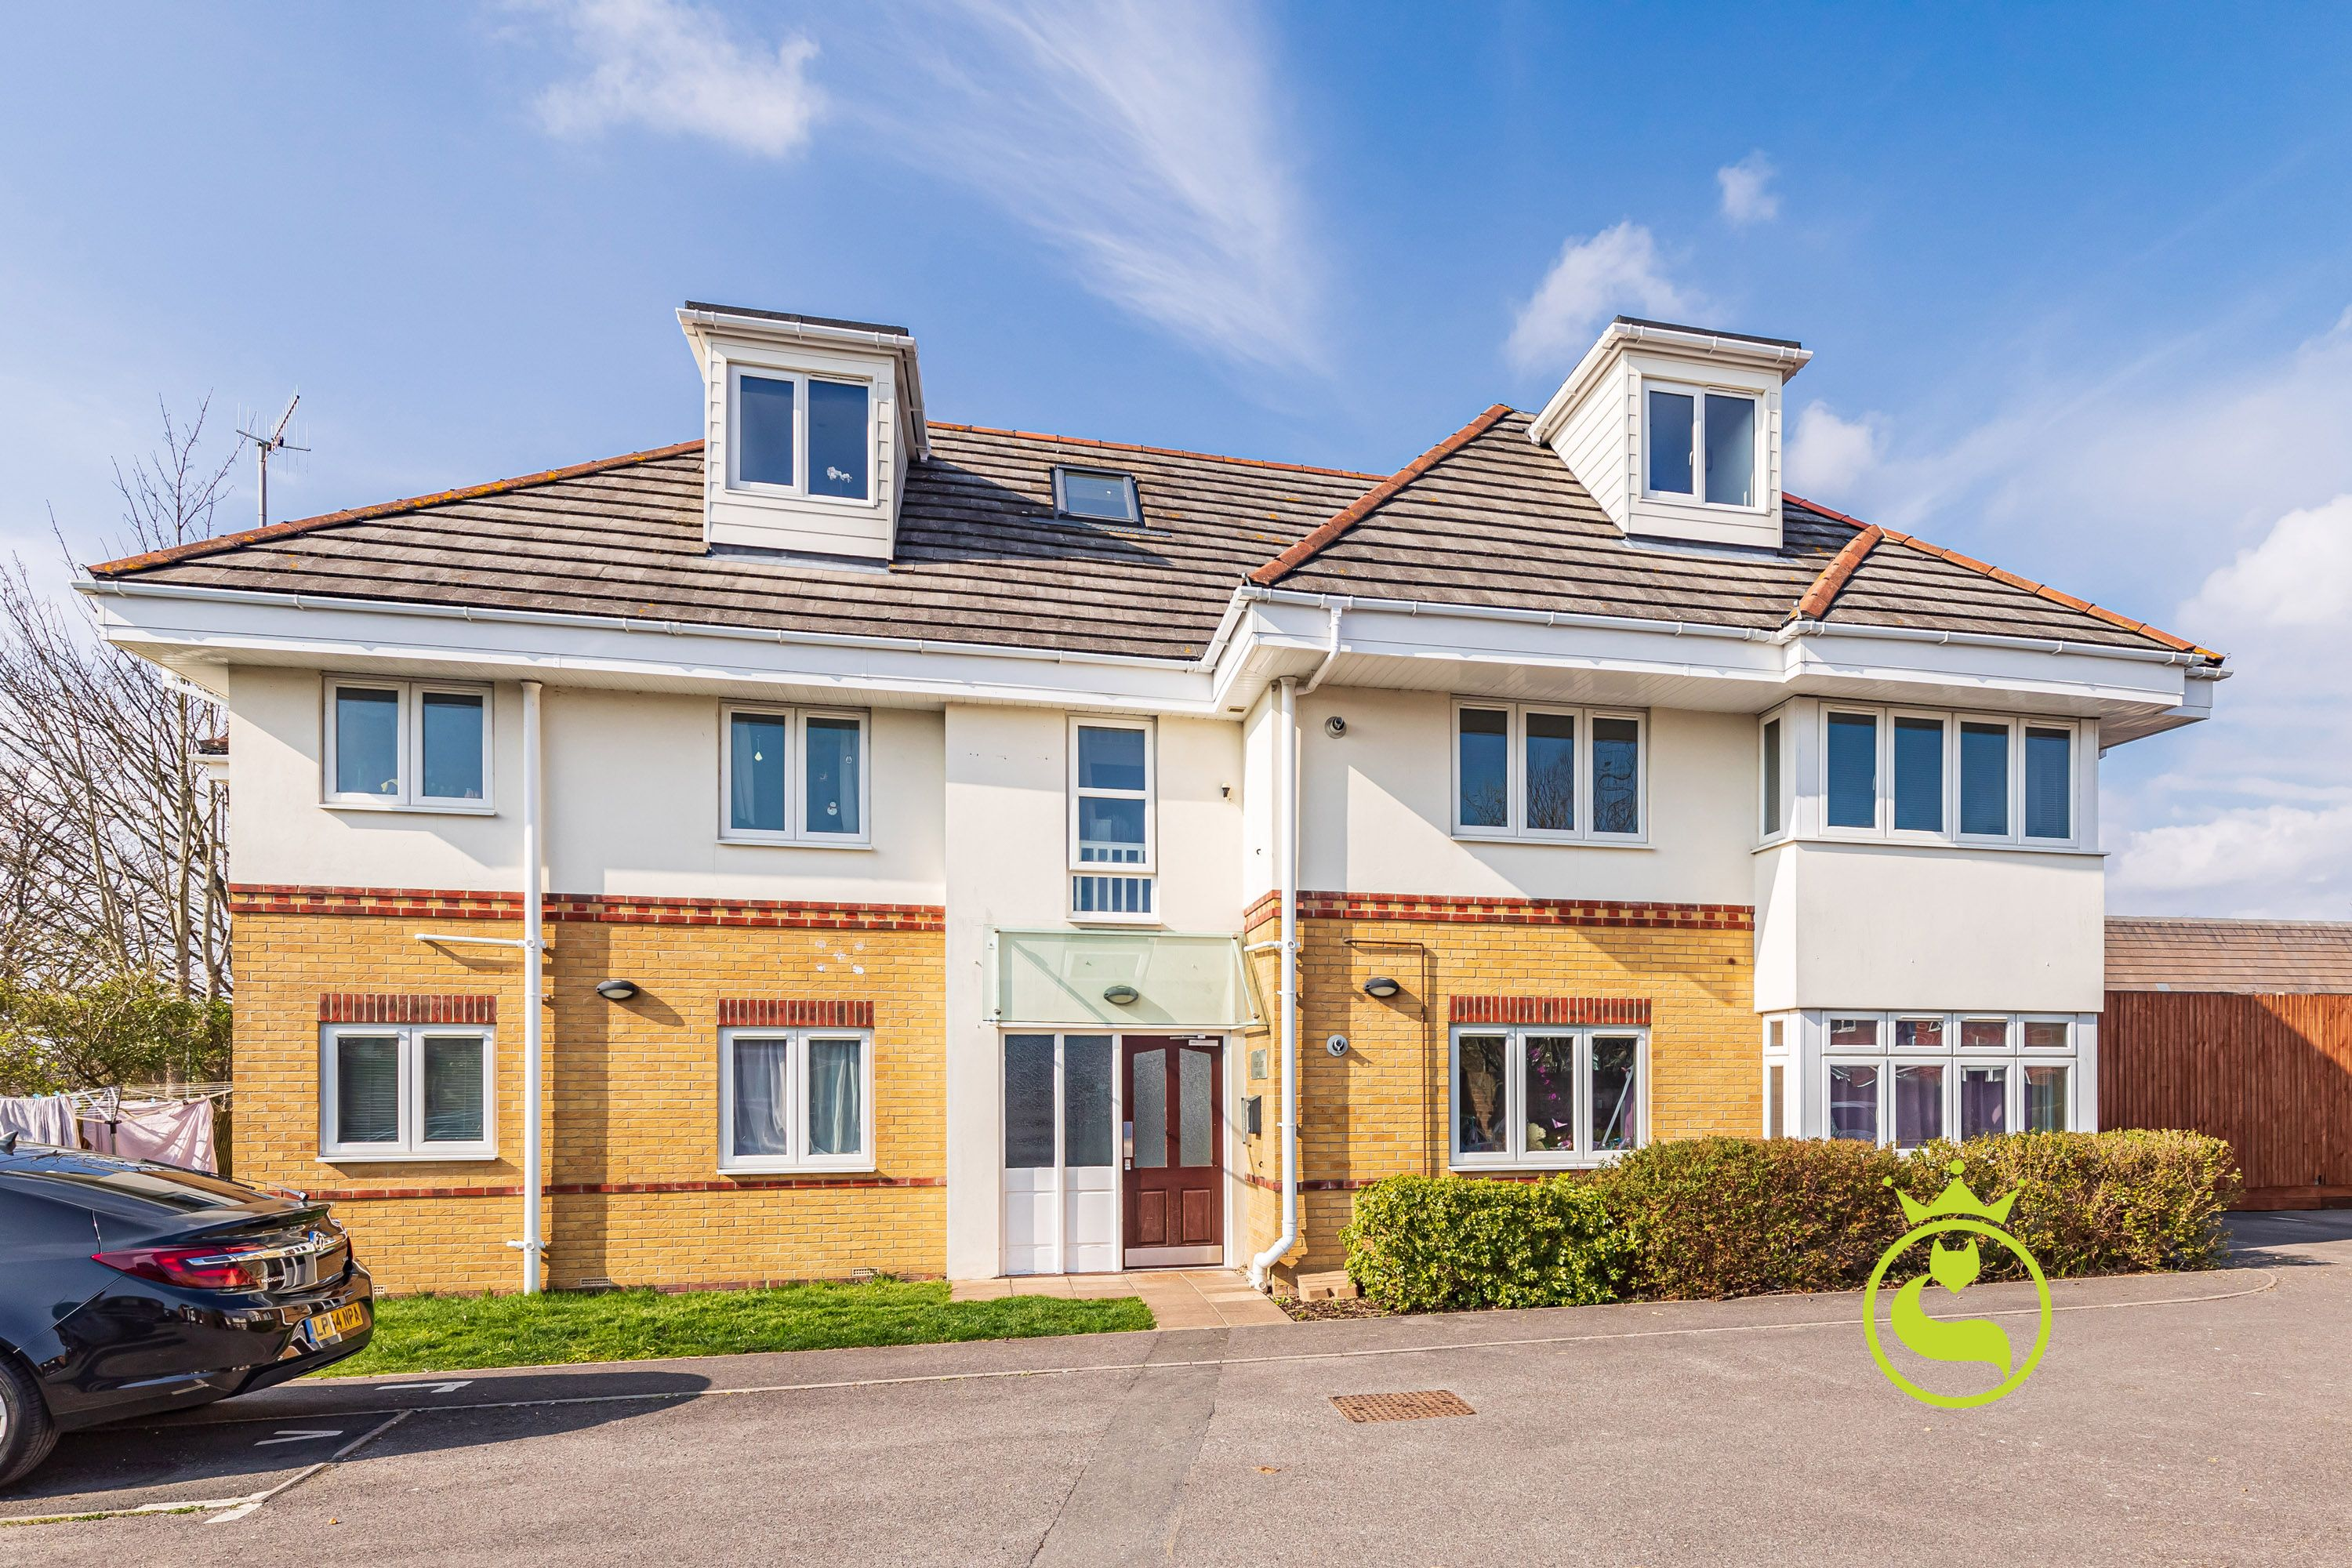 A great opportunity to purchase a ground floor apartment tucked away on a private road in the heart of Oakdale. You will fall in love with the open plan living area which leads onto the garden.